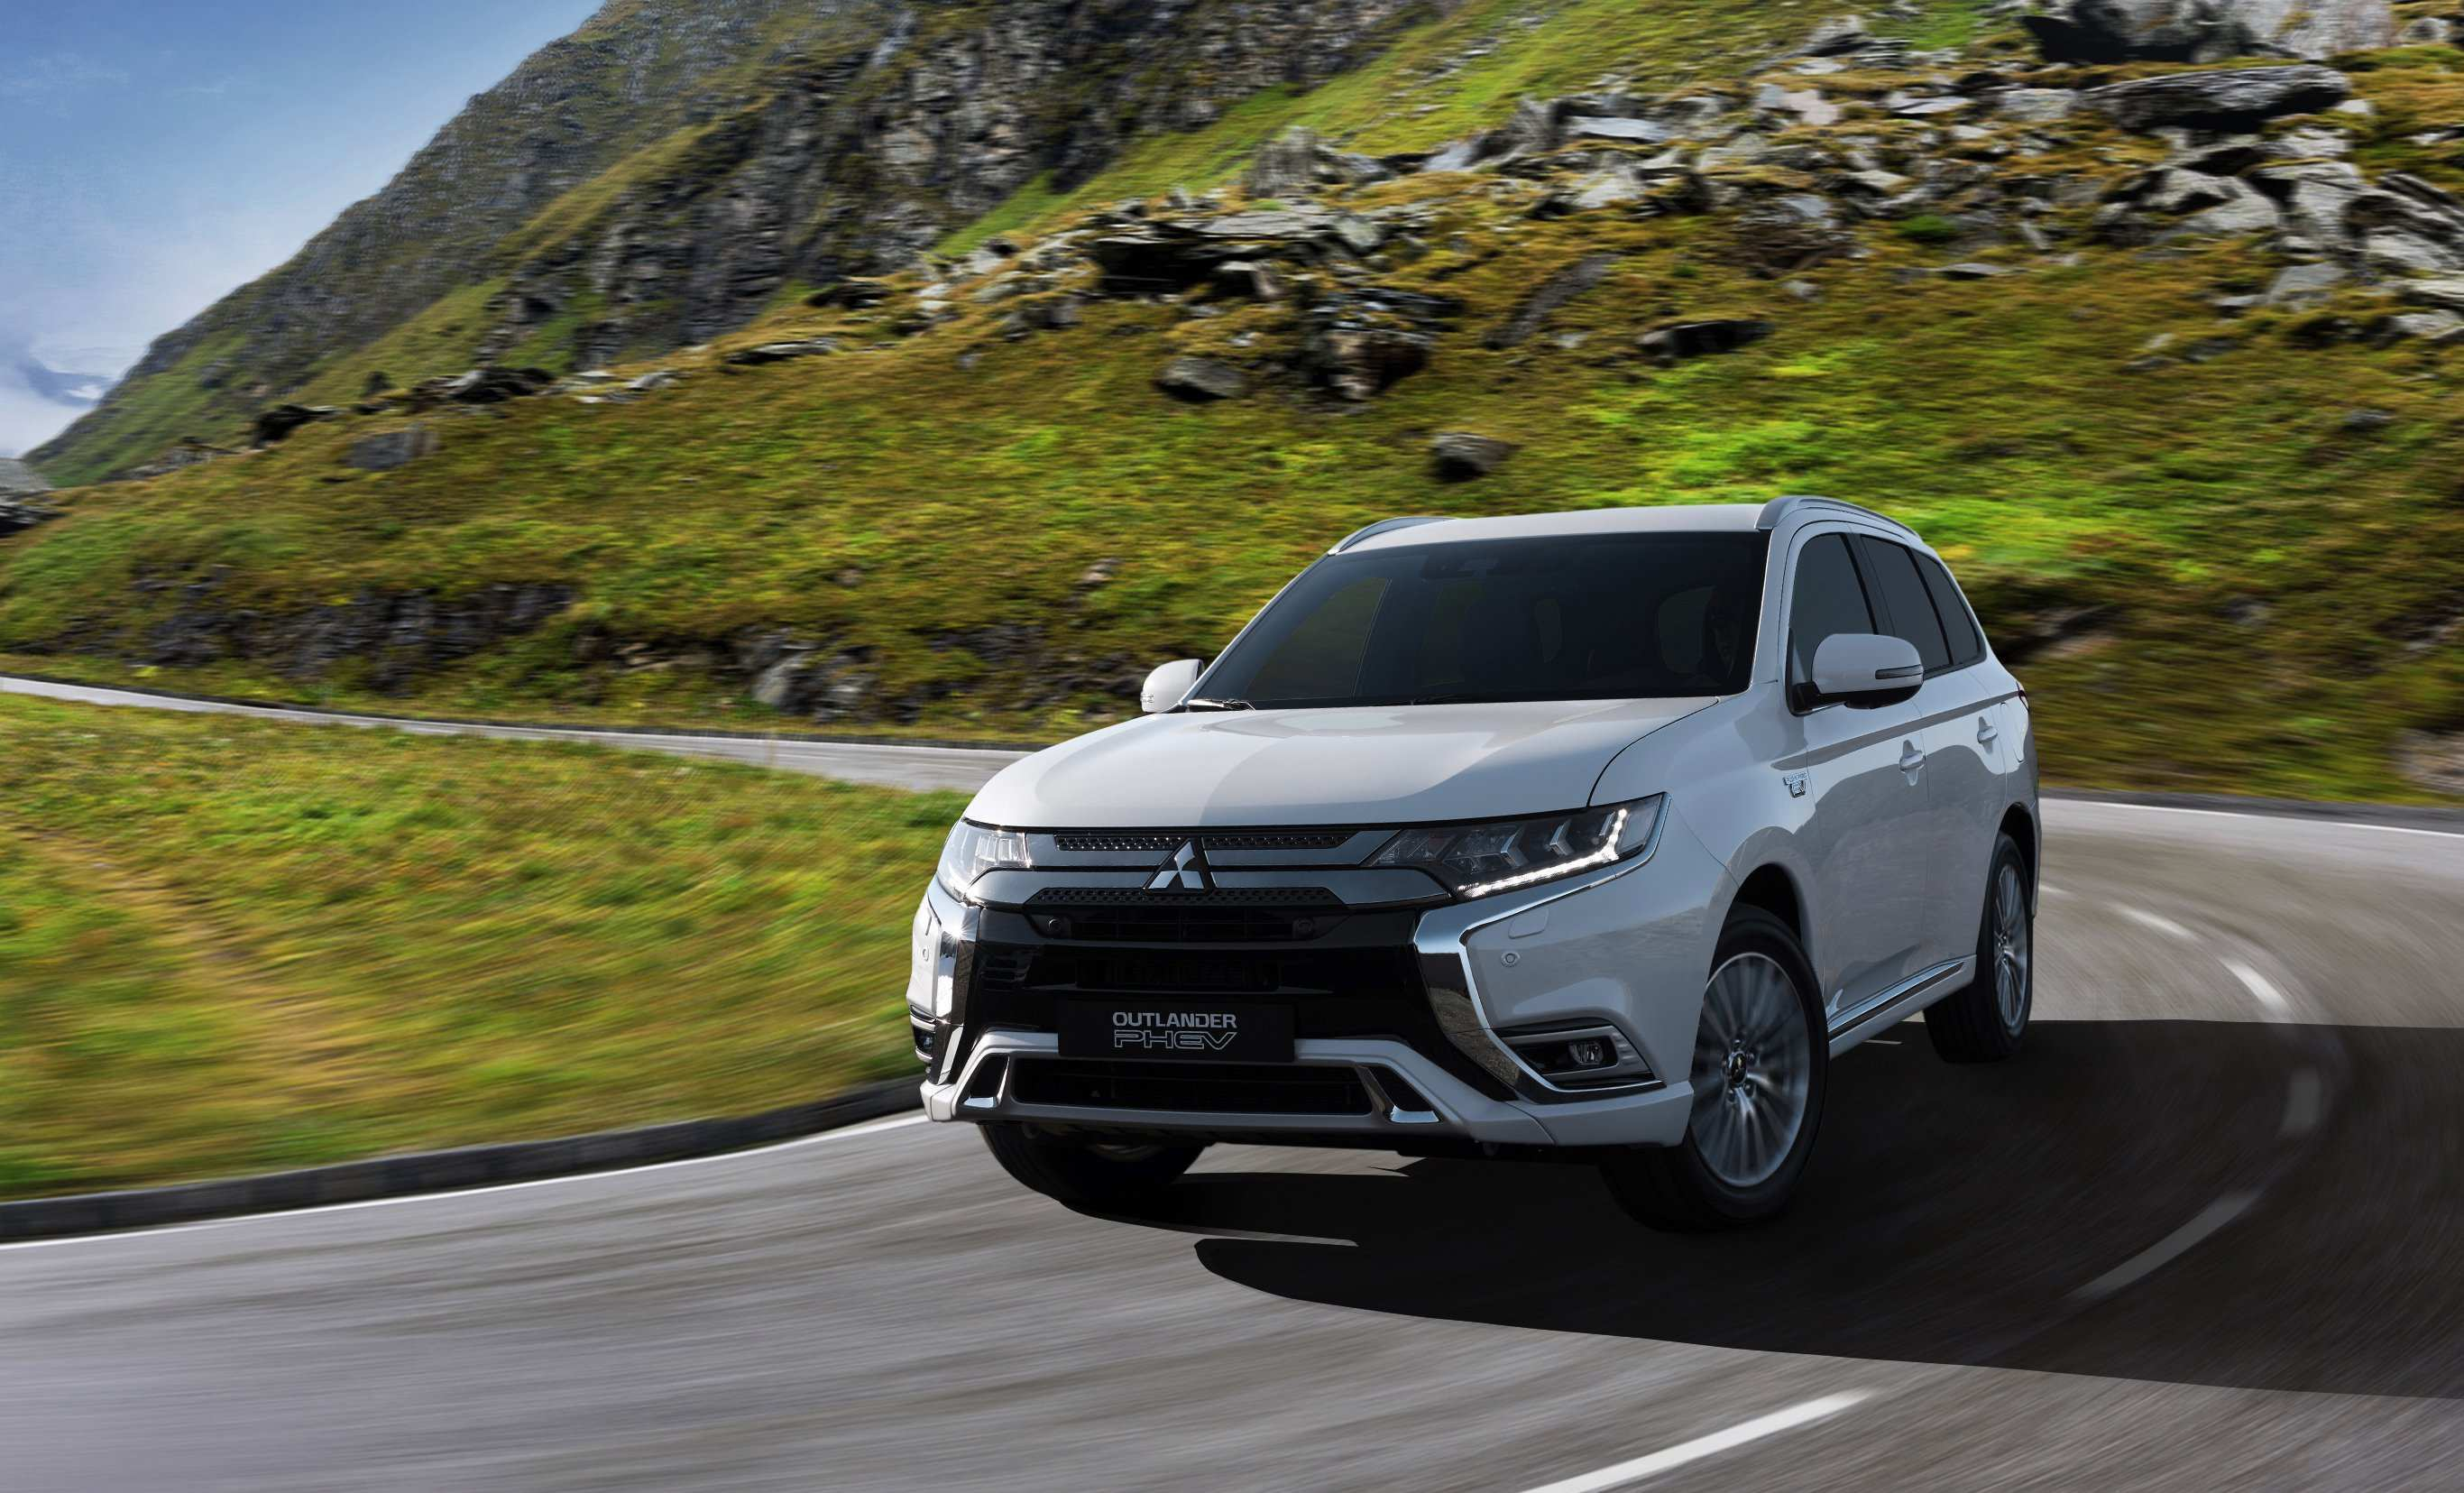 18 Best Uusi Mitsubishi Asx 2020 Research New